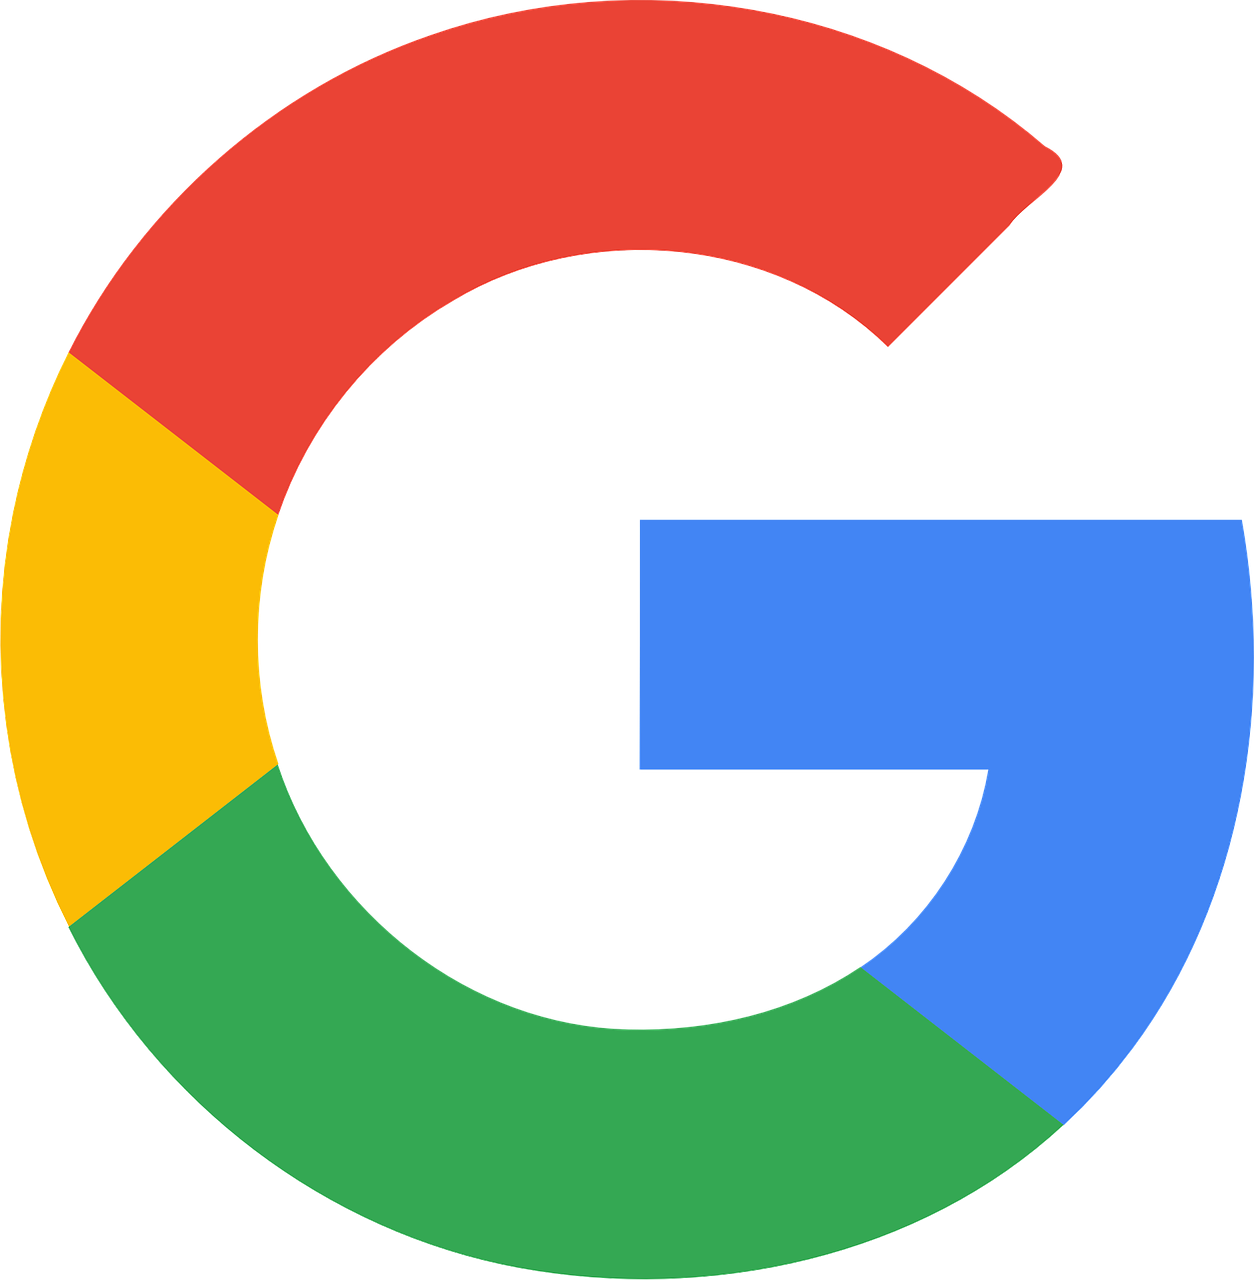 Leave review on Google Business - Thank you!